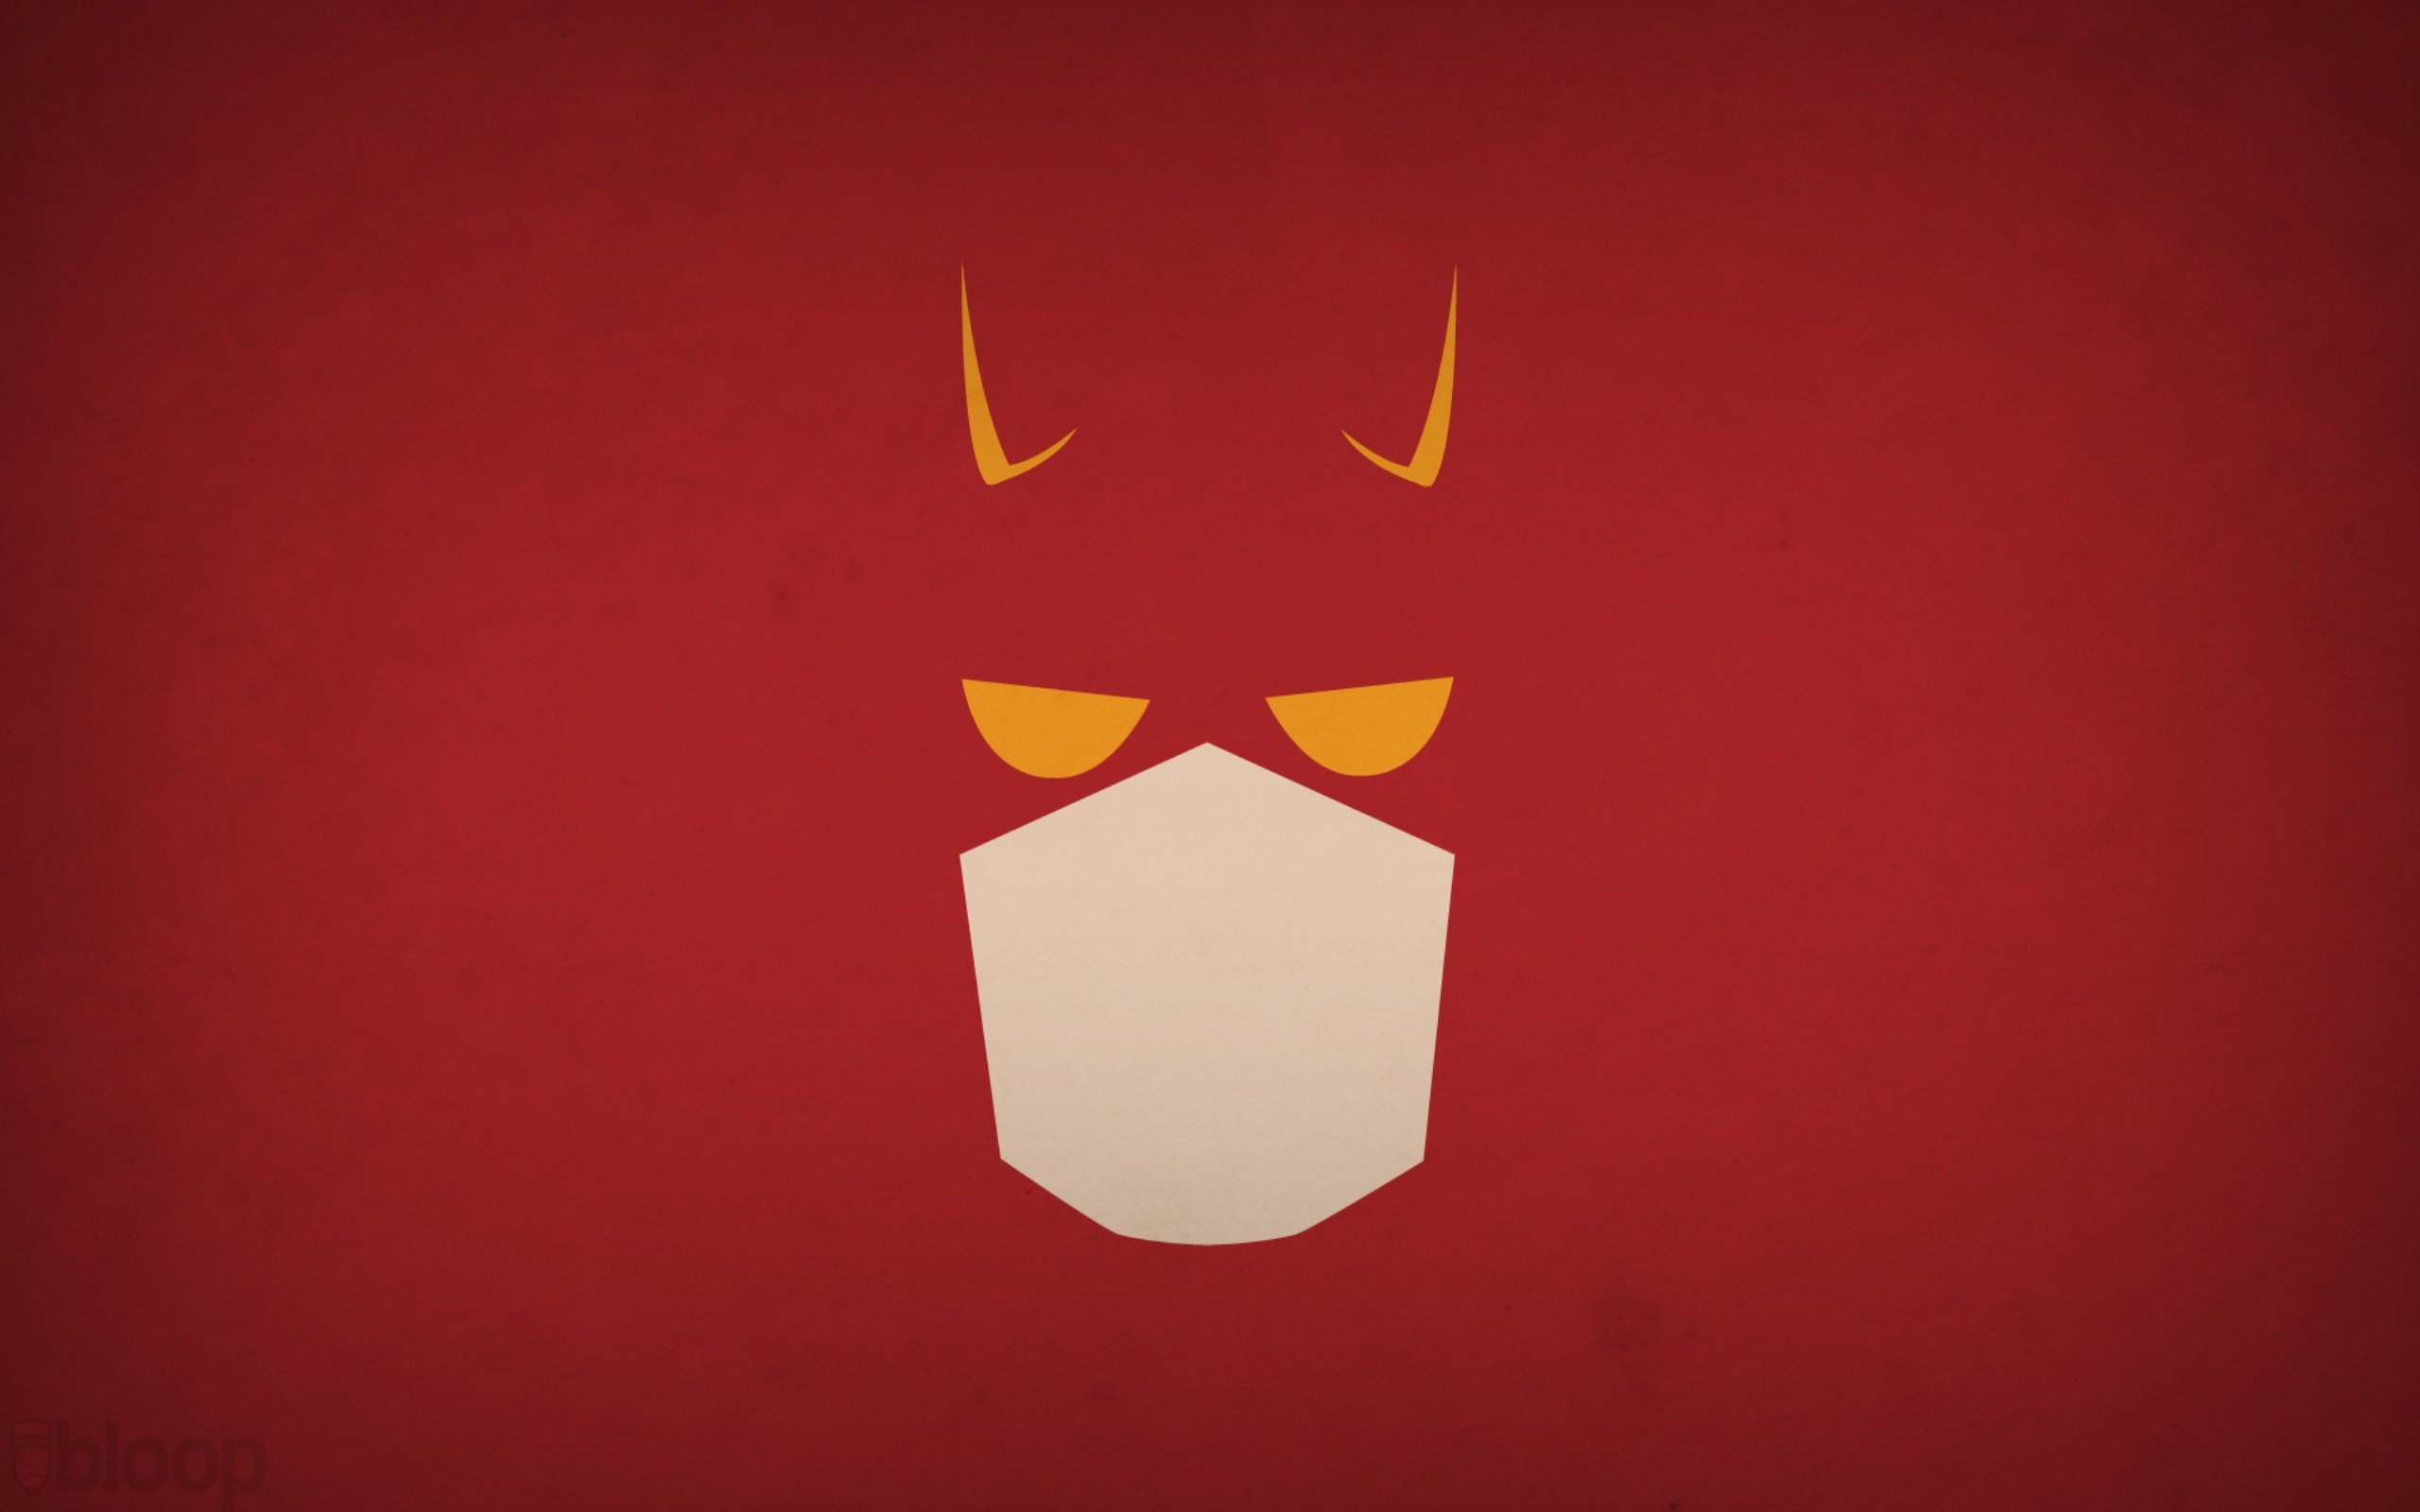 Daredevil Illustration wallpapers Daredevil Illustration stock 2560x1600